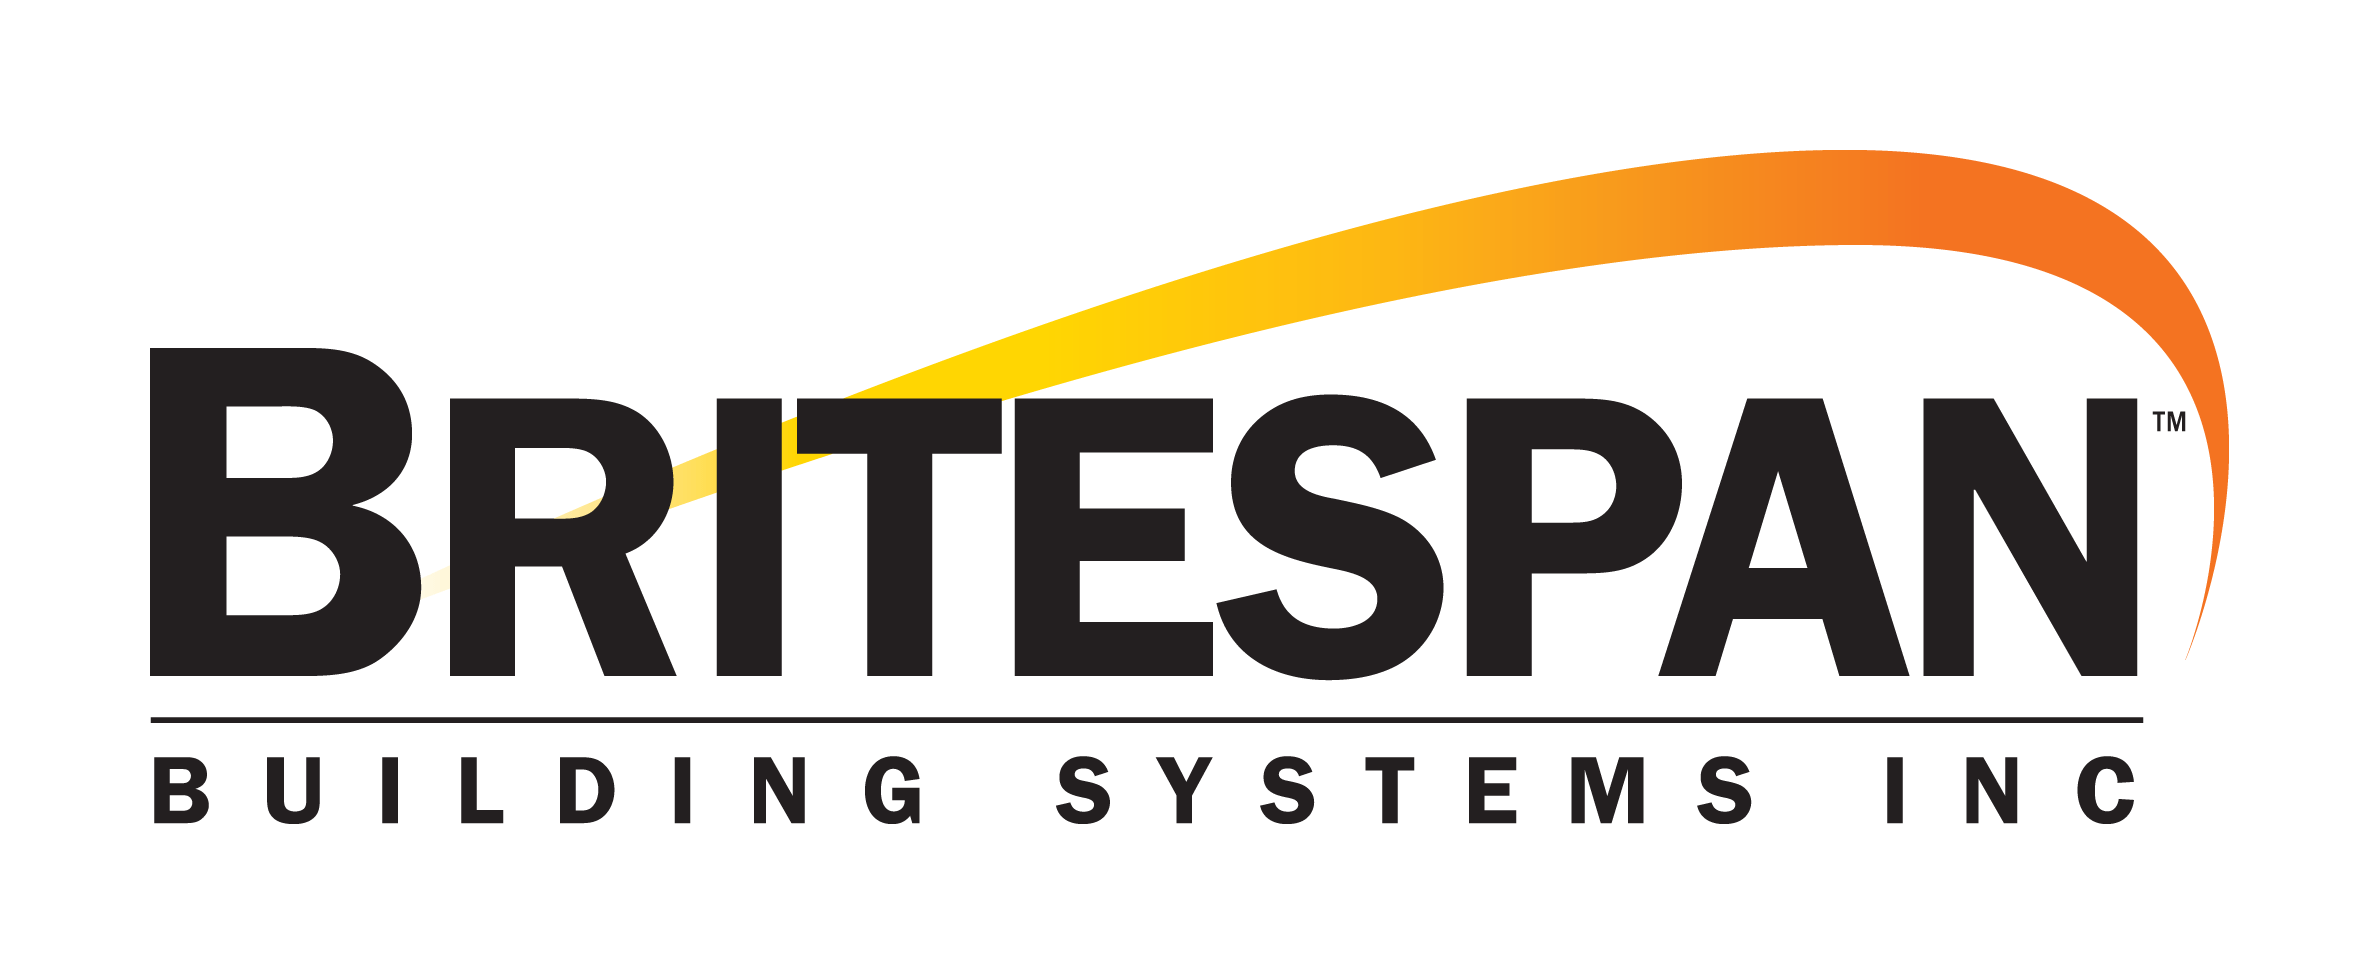 Britespan Building Systems Inc.